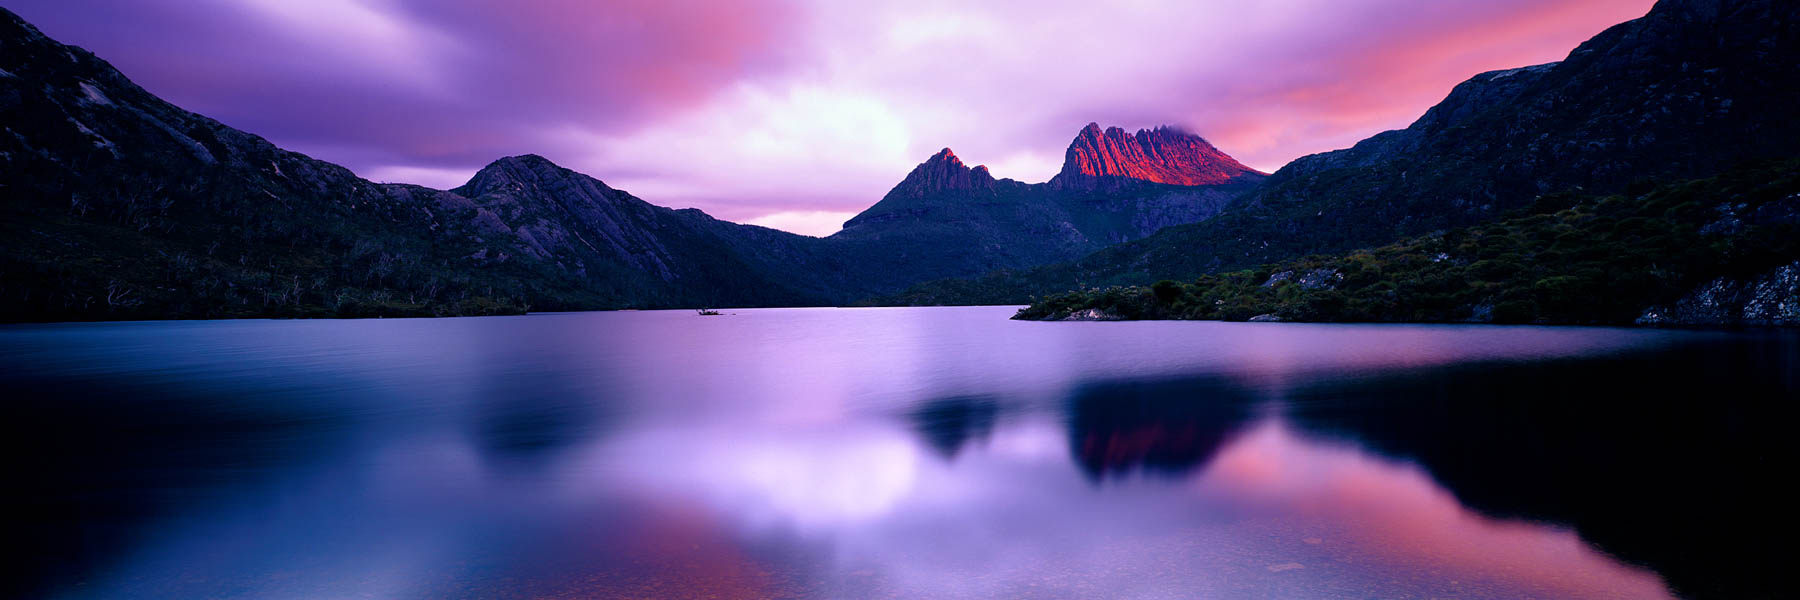 A shaft of dawn sunlight pierces the clouds above Dove Lake, Cradle Mountain, Tasmania, Australia.